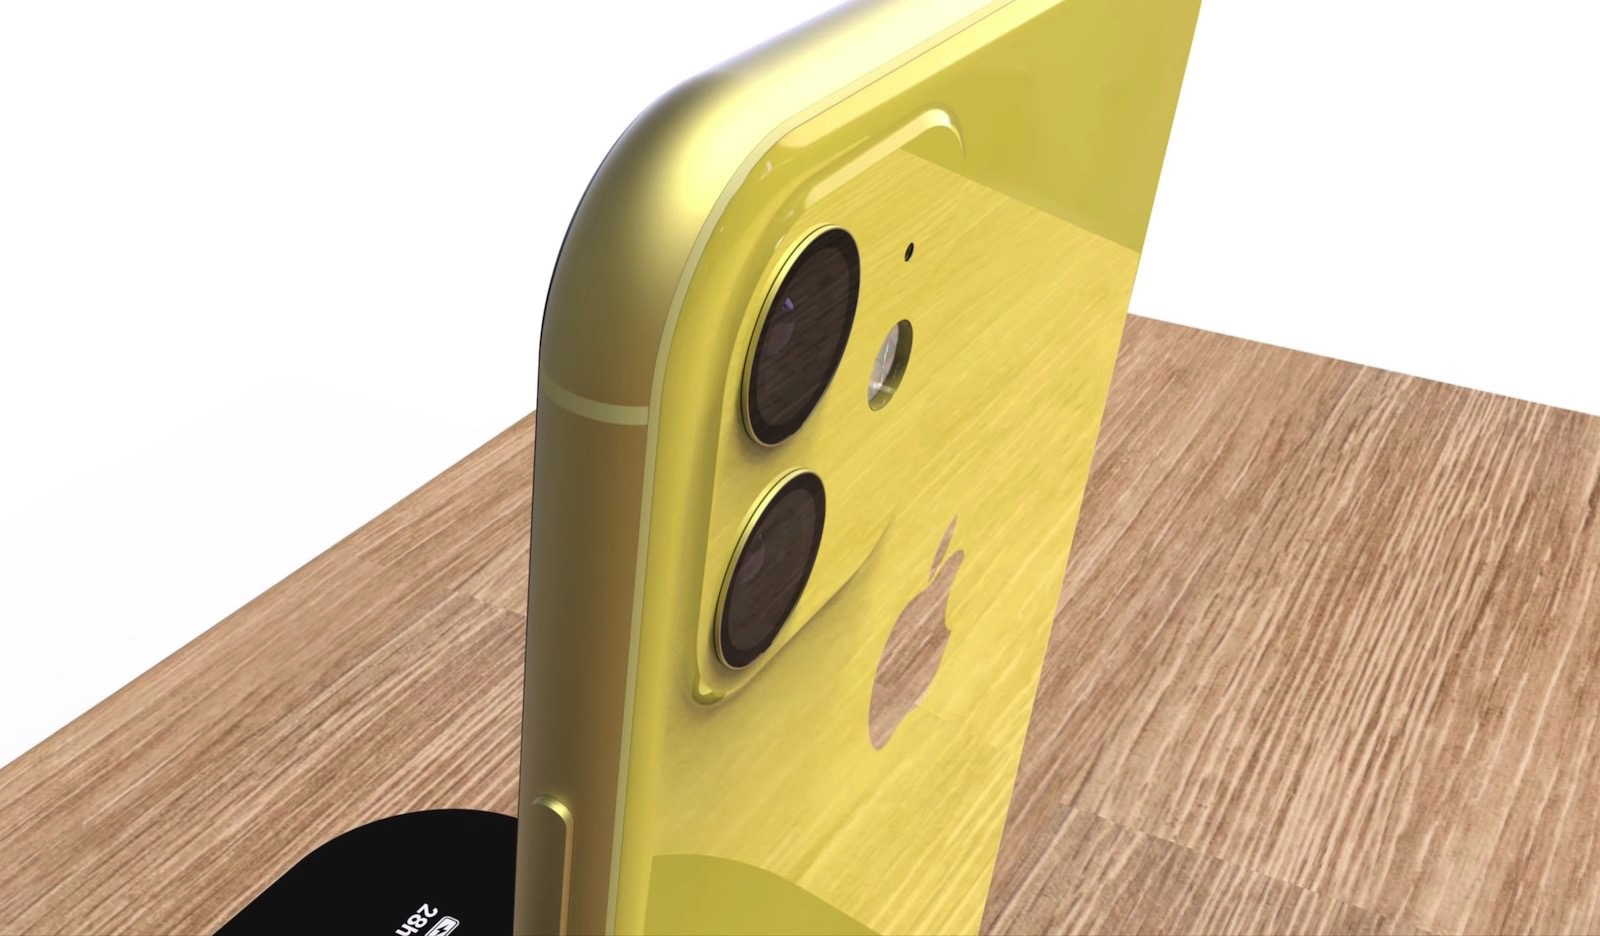 iphone-xr-2019-concept-image.jpg